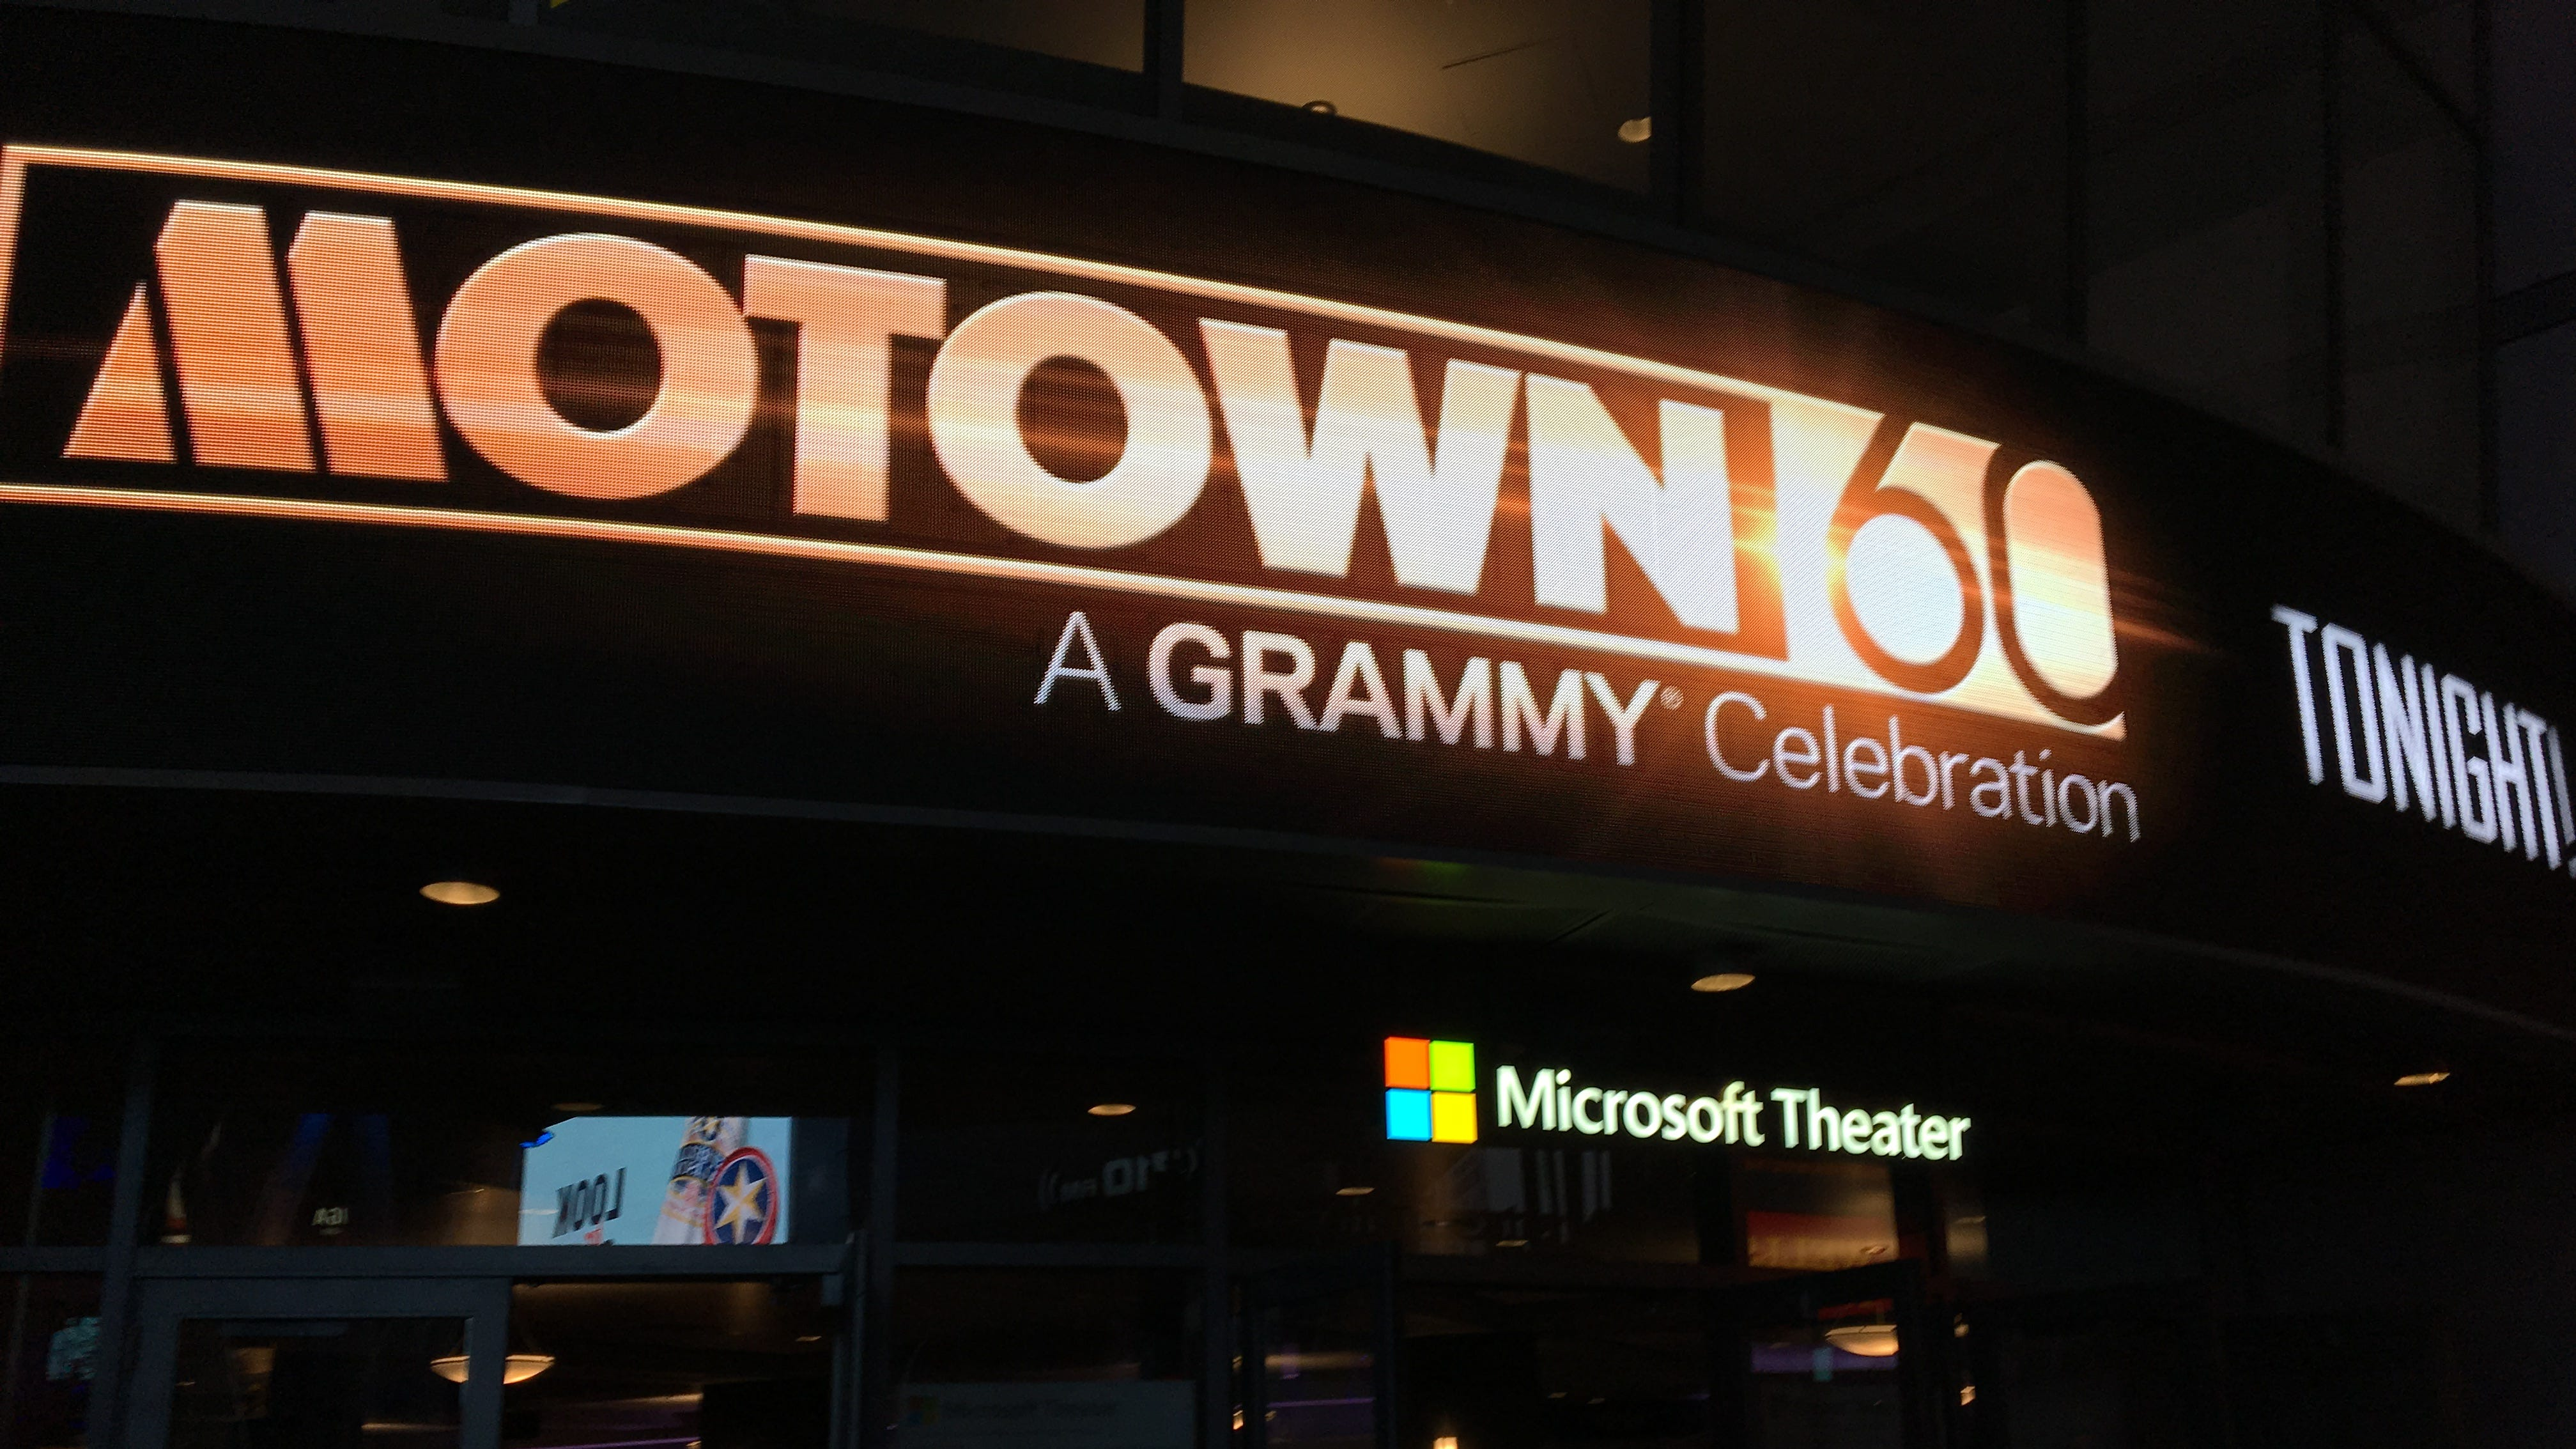 Berry Gordy's Motown documentary 'Hitsville' to debut in April on Showtime